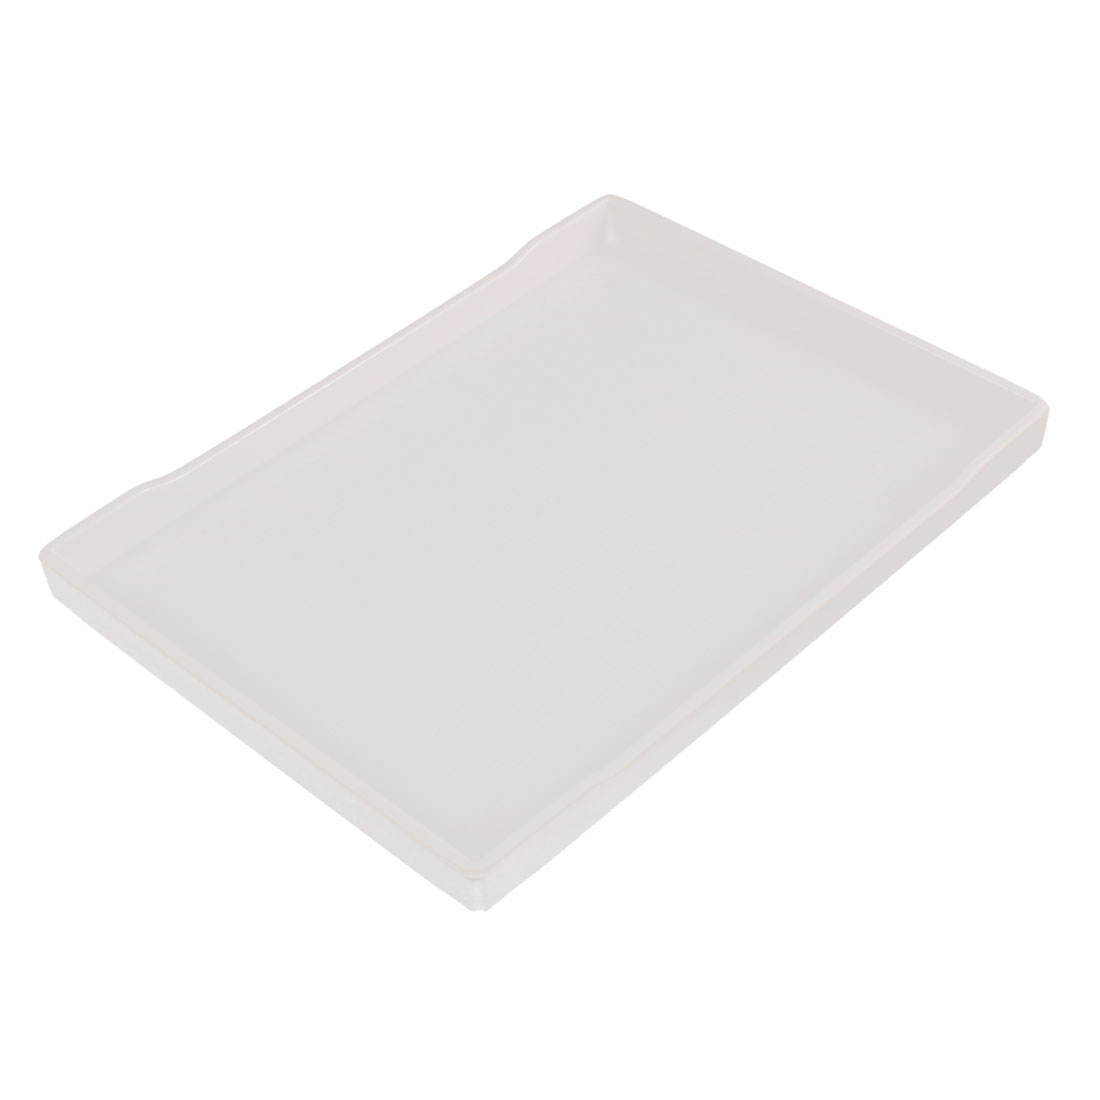 Restaurant Plastic Fast Food Dinner Dessert Vegetable Serving Tray Off White